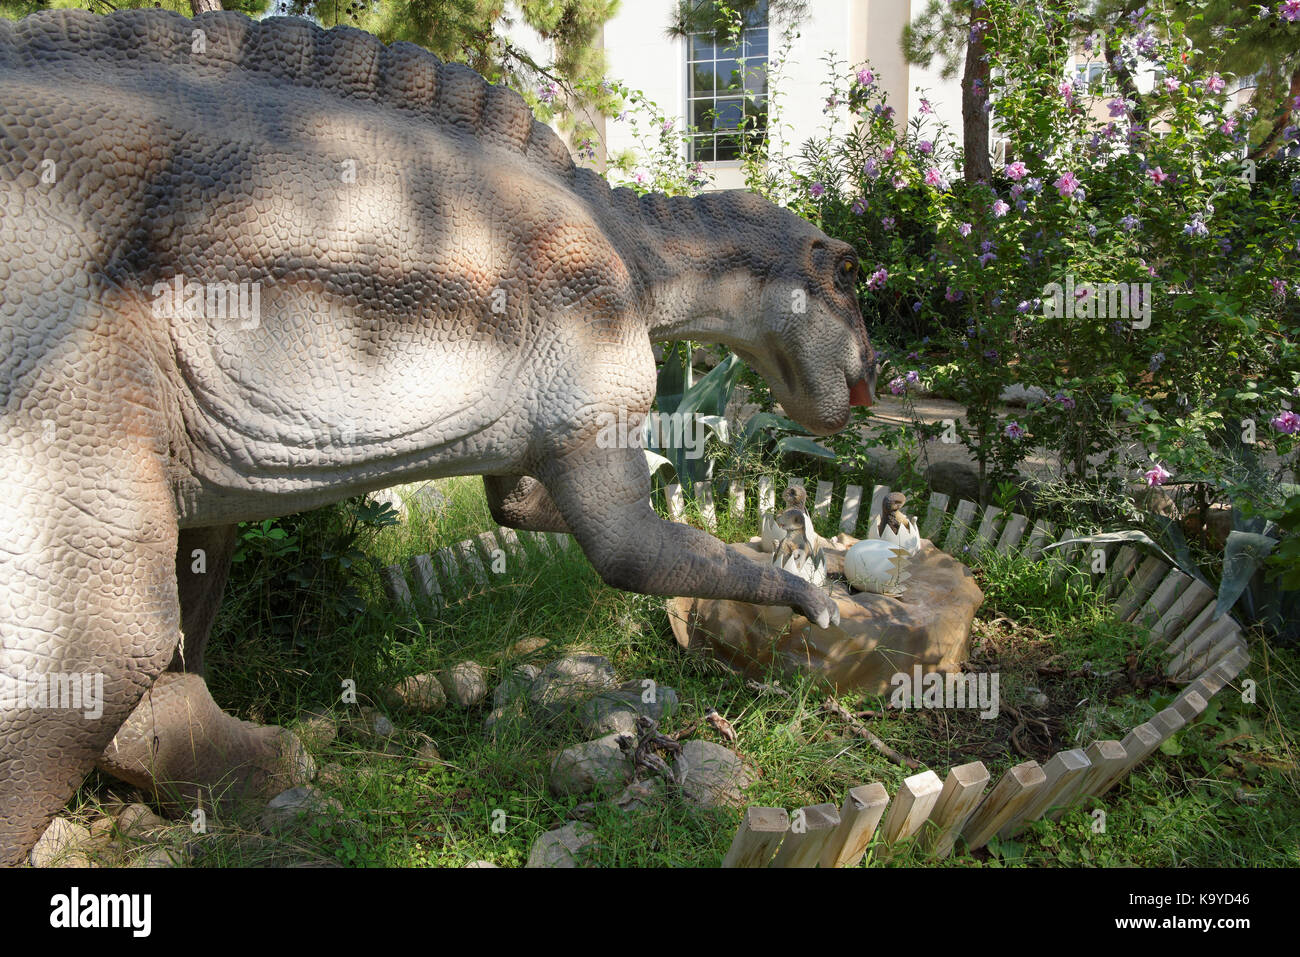 Dinosaur Nest And Eggs Stockfotos & Dinosaur Nest And Eggs Bilder ...